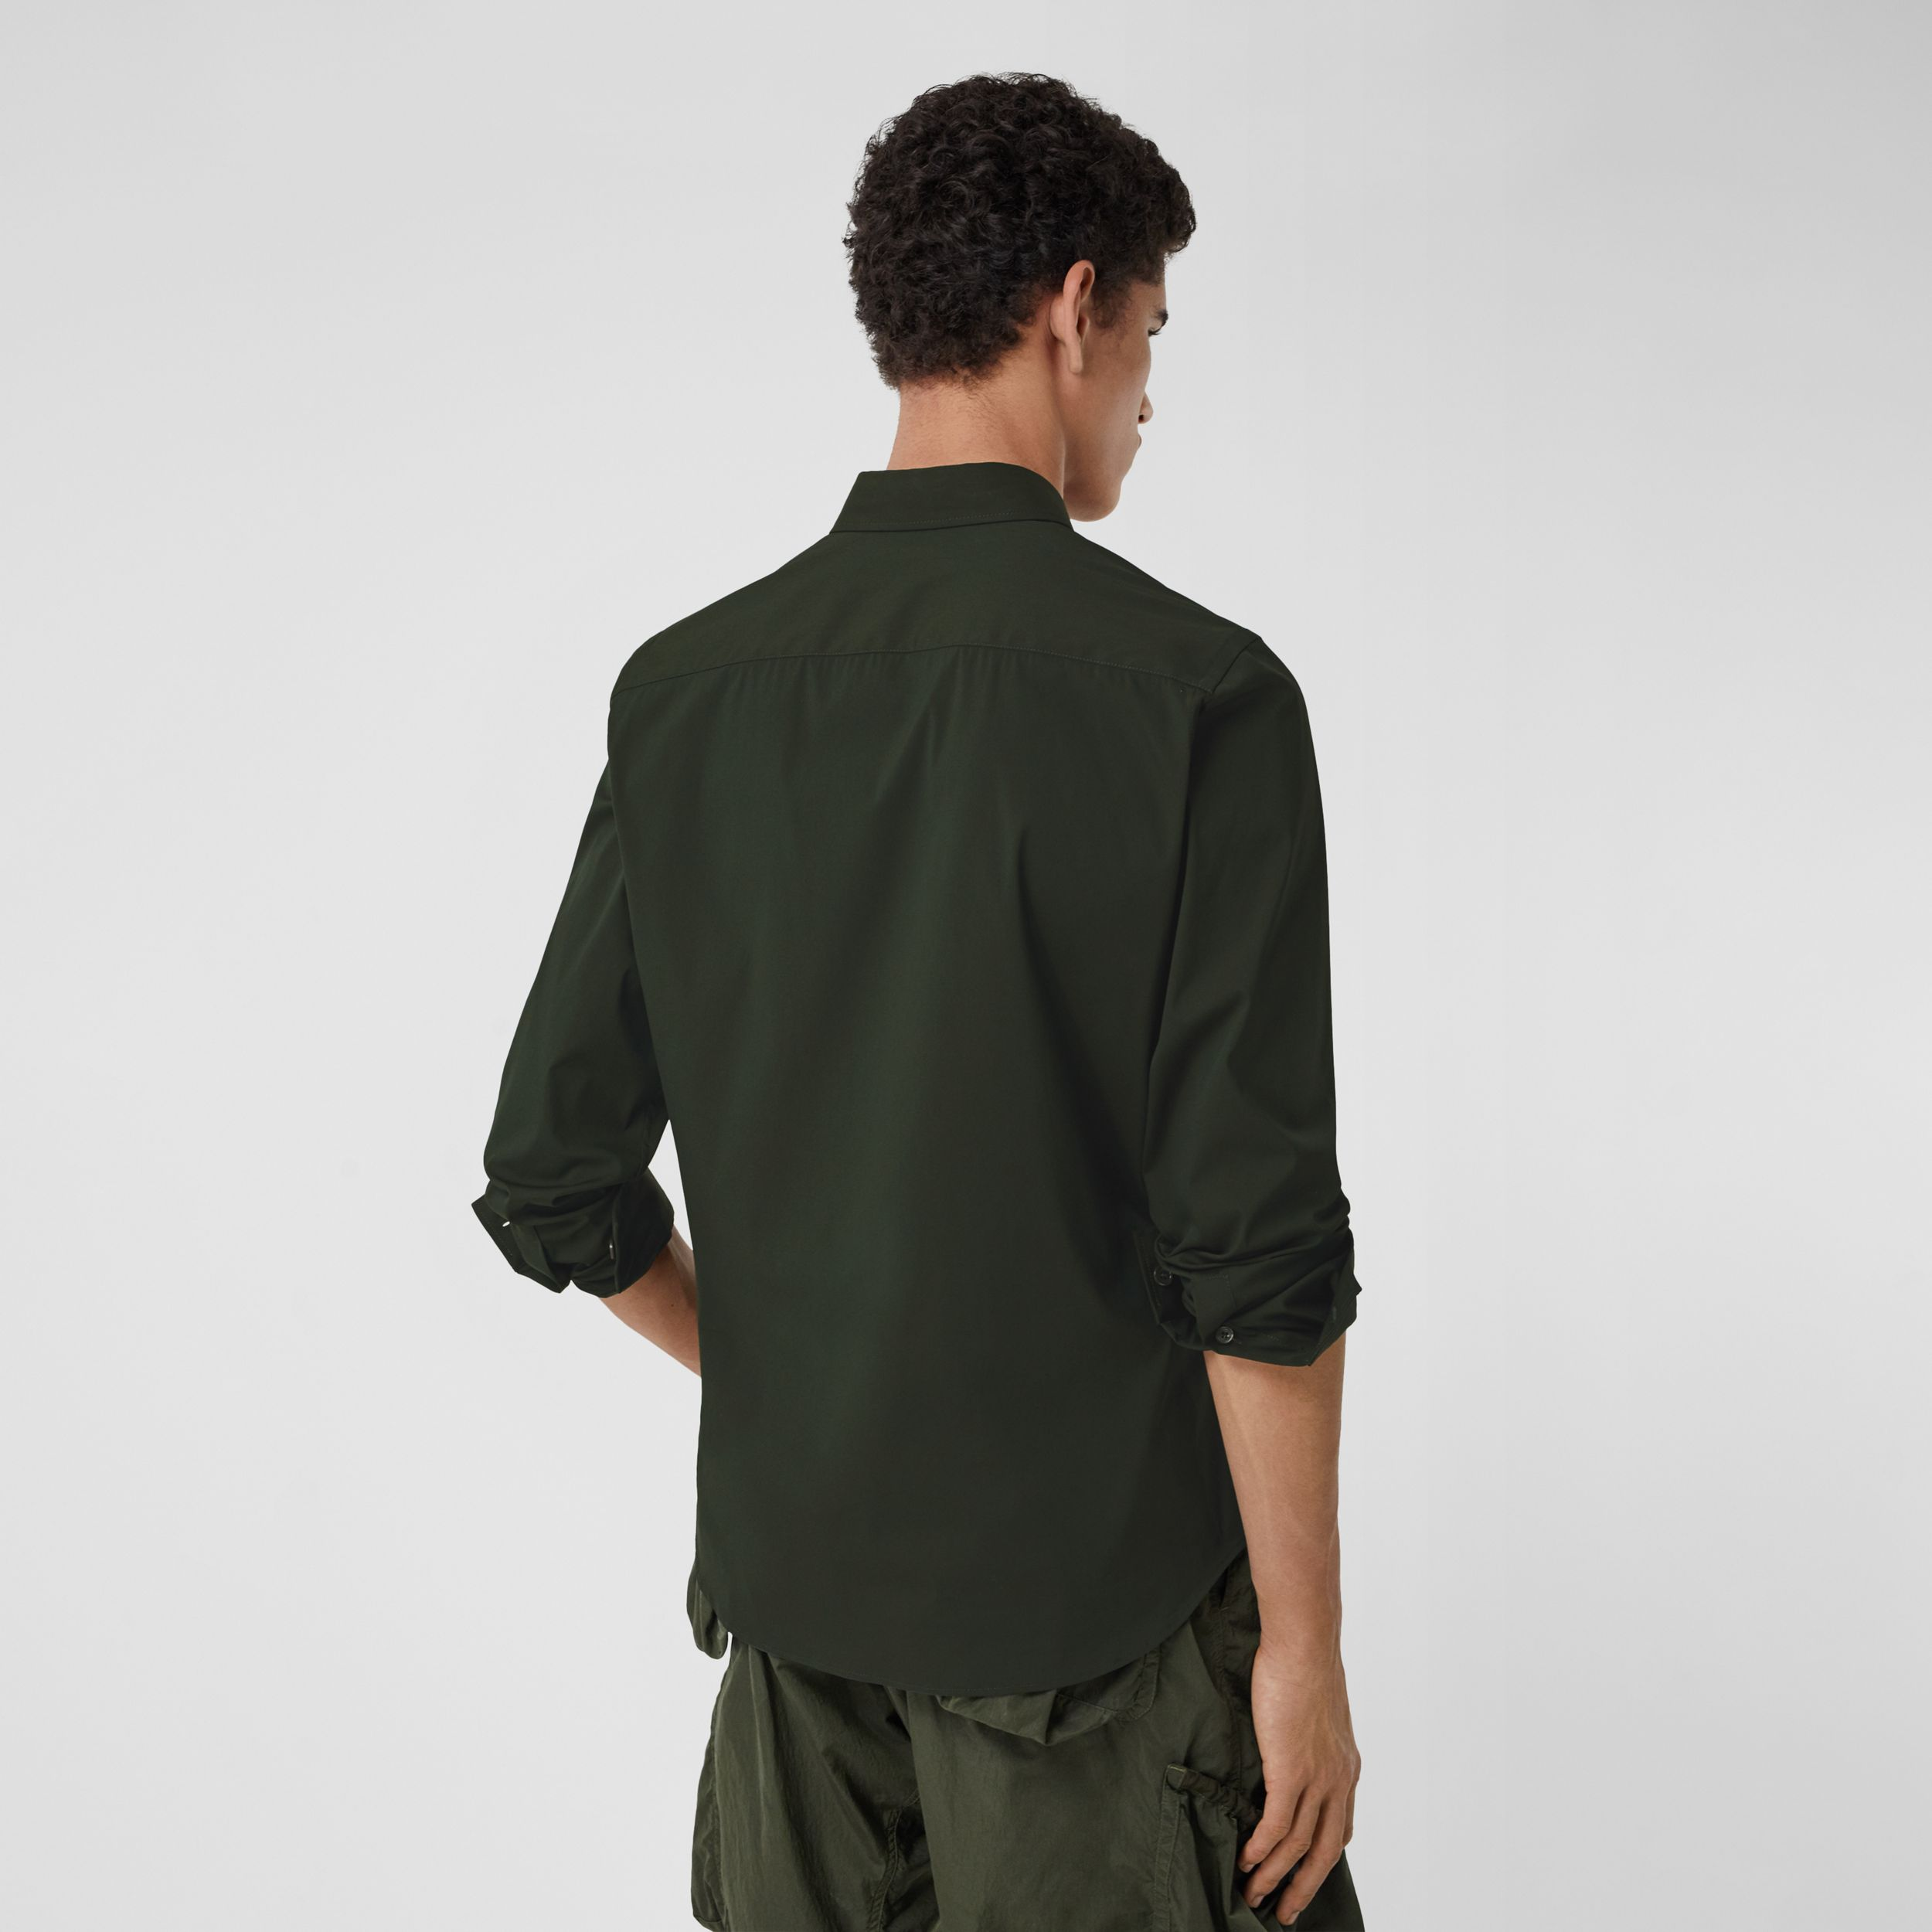 Embroidered Logo Cotton Blend Shirt in Forest Green - Men | Burberry - 3